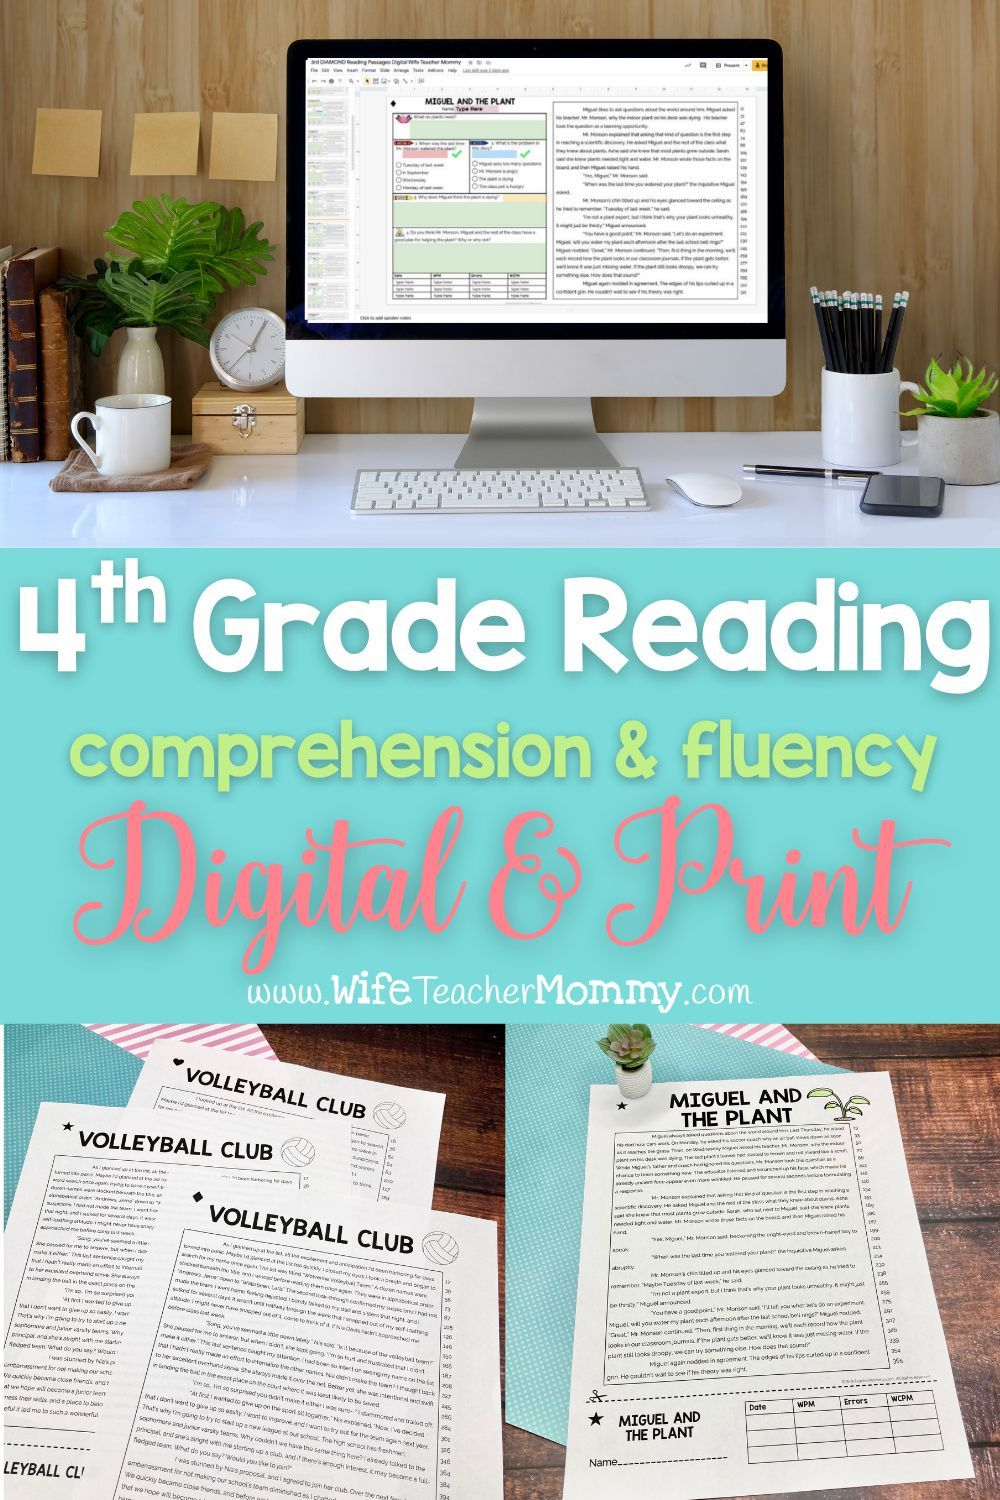 Reading And Oral Fluency For Fourth Grade For The Entire Year Print Digital Wife Tea In 2020 Reading Fluency Passages Oral Reading Fluency Differentiated Reading [ 1500 x 1000 Pixel ]